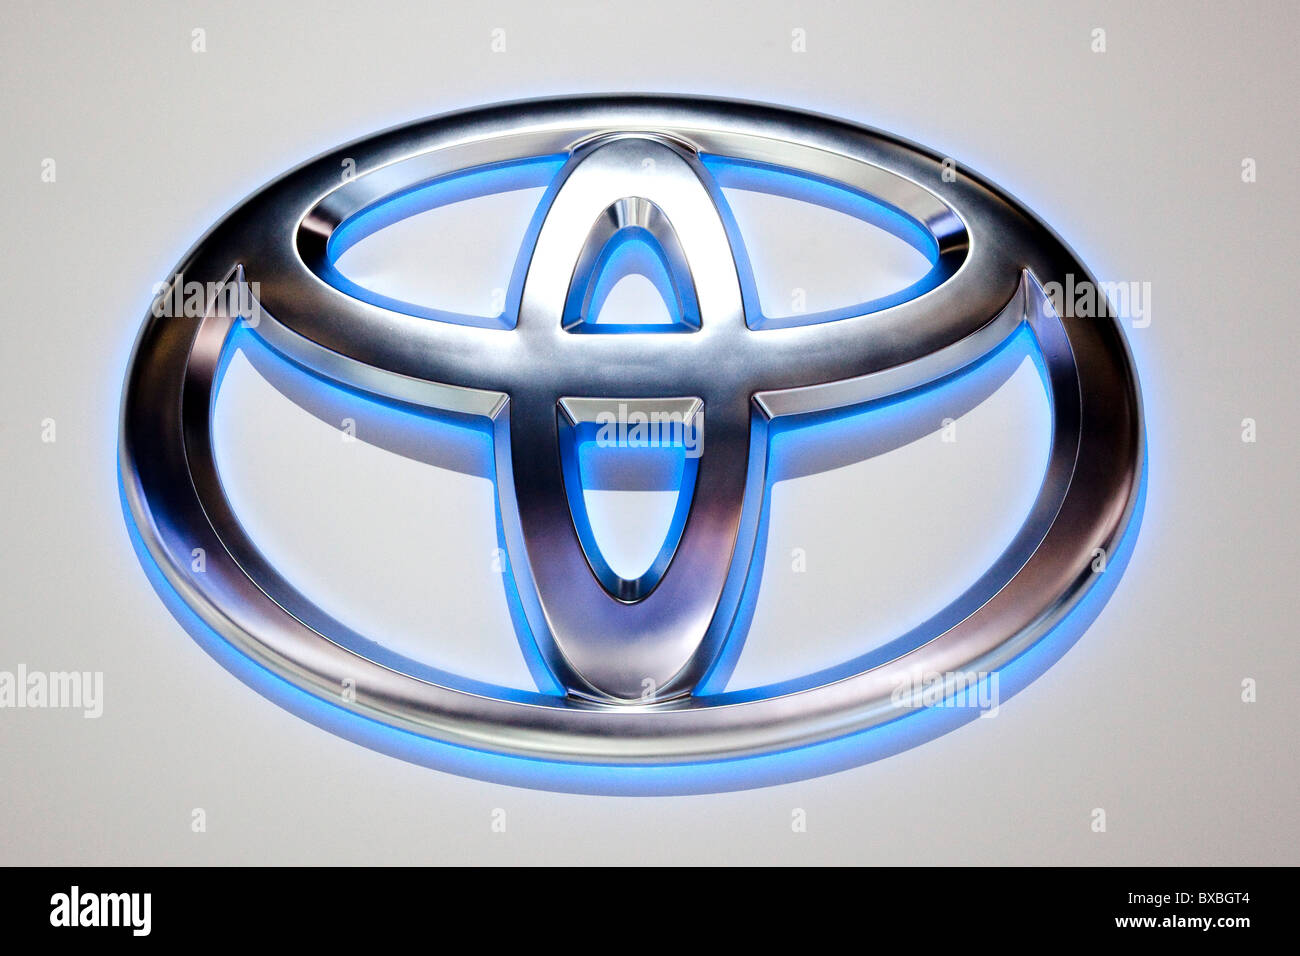 Logo of the Toyota car brand - Stock Image